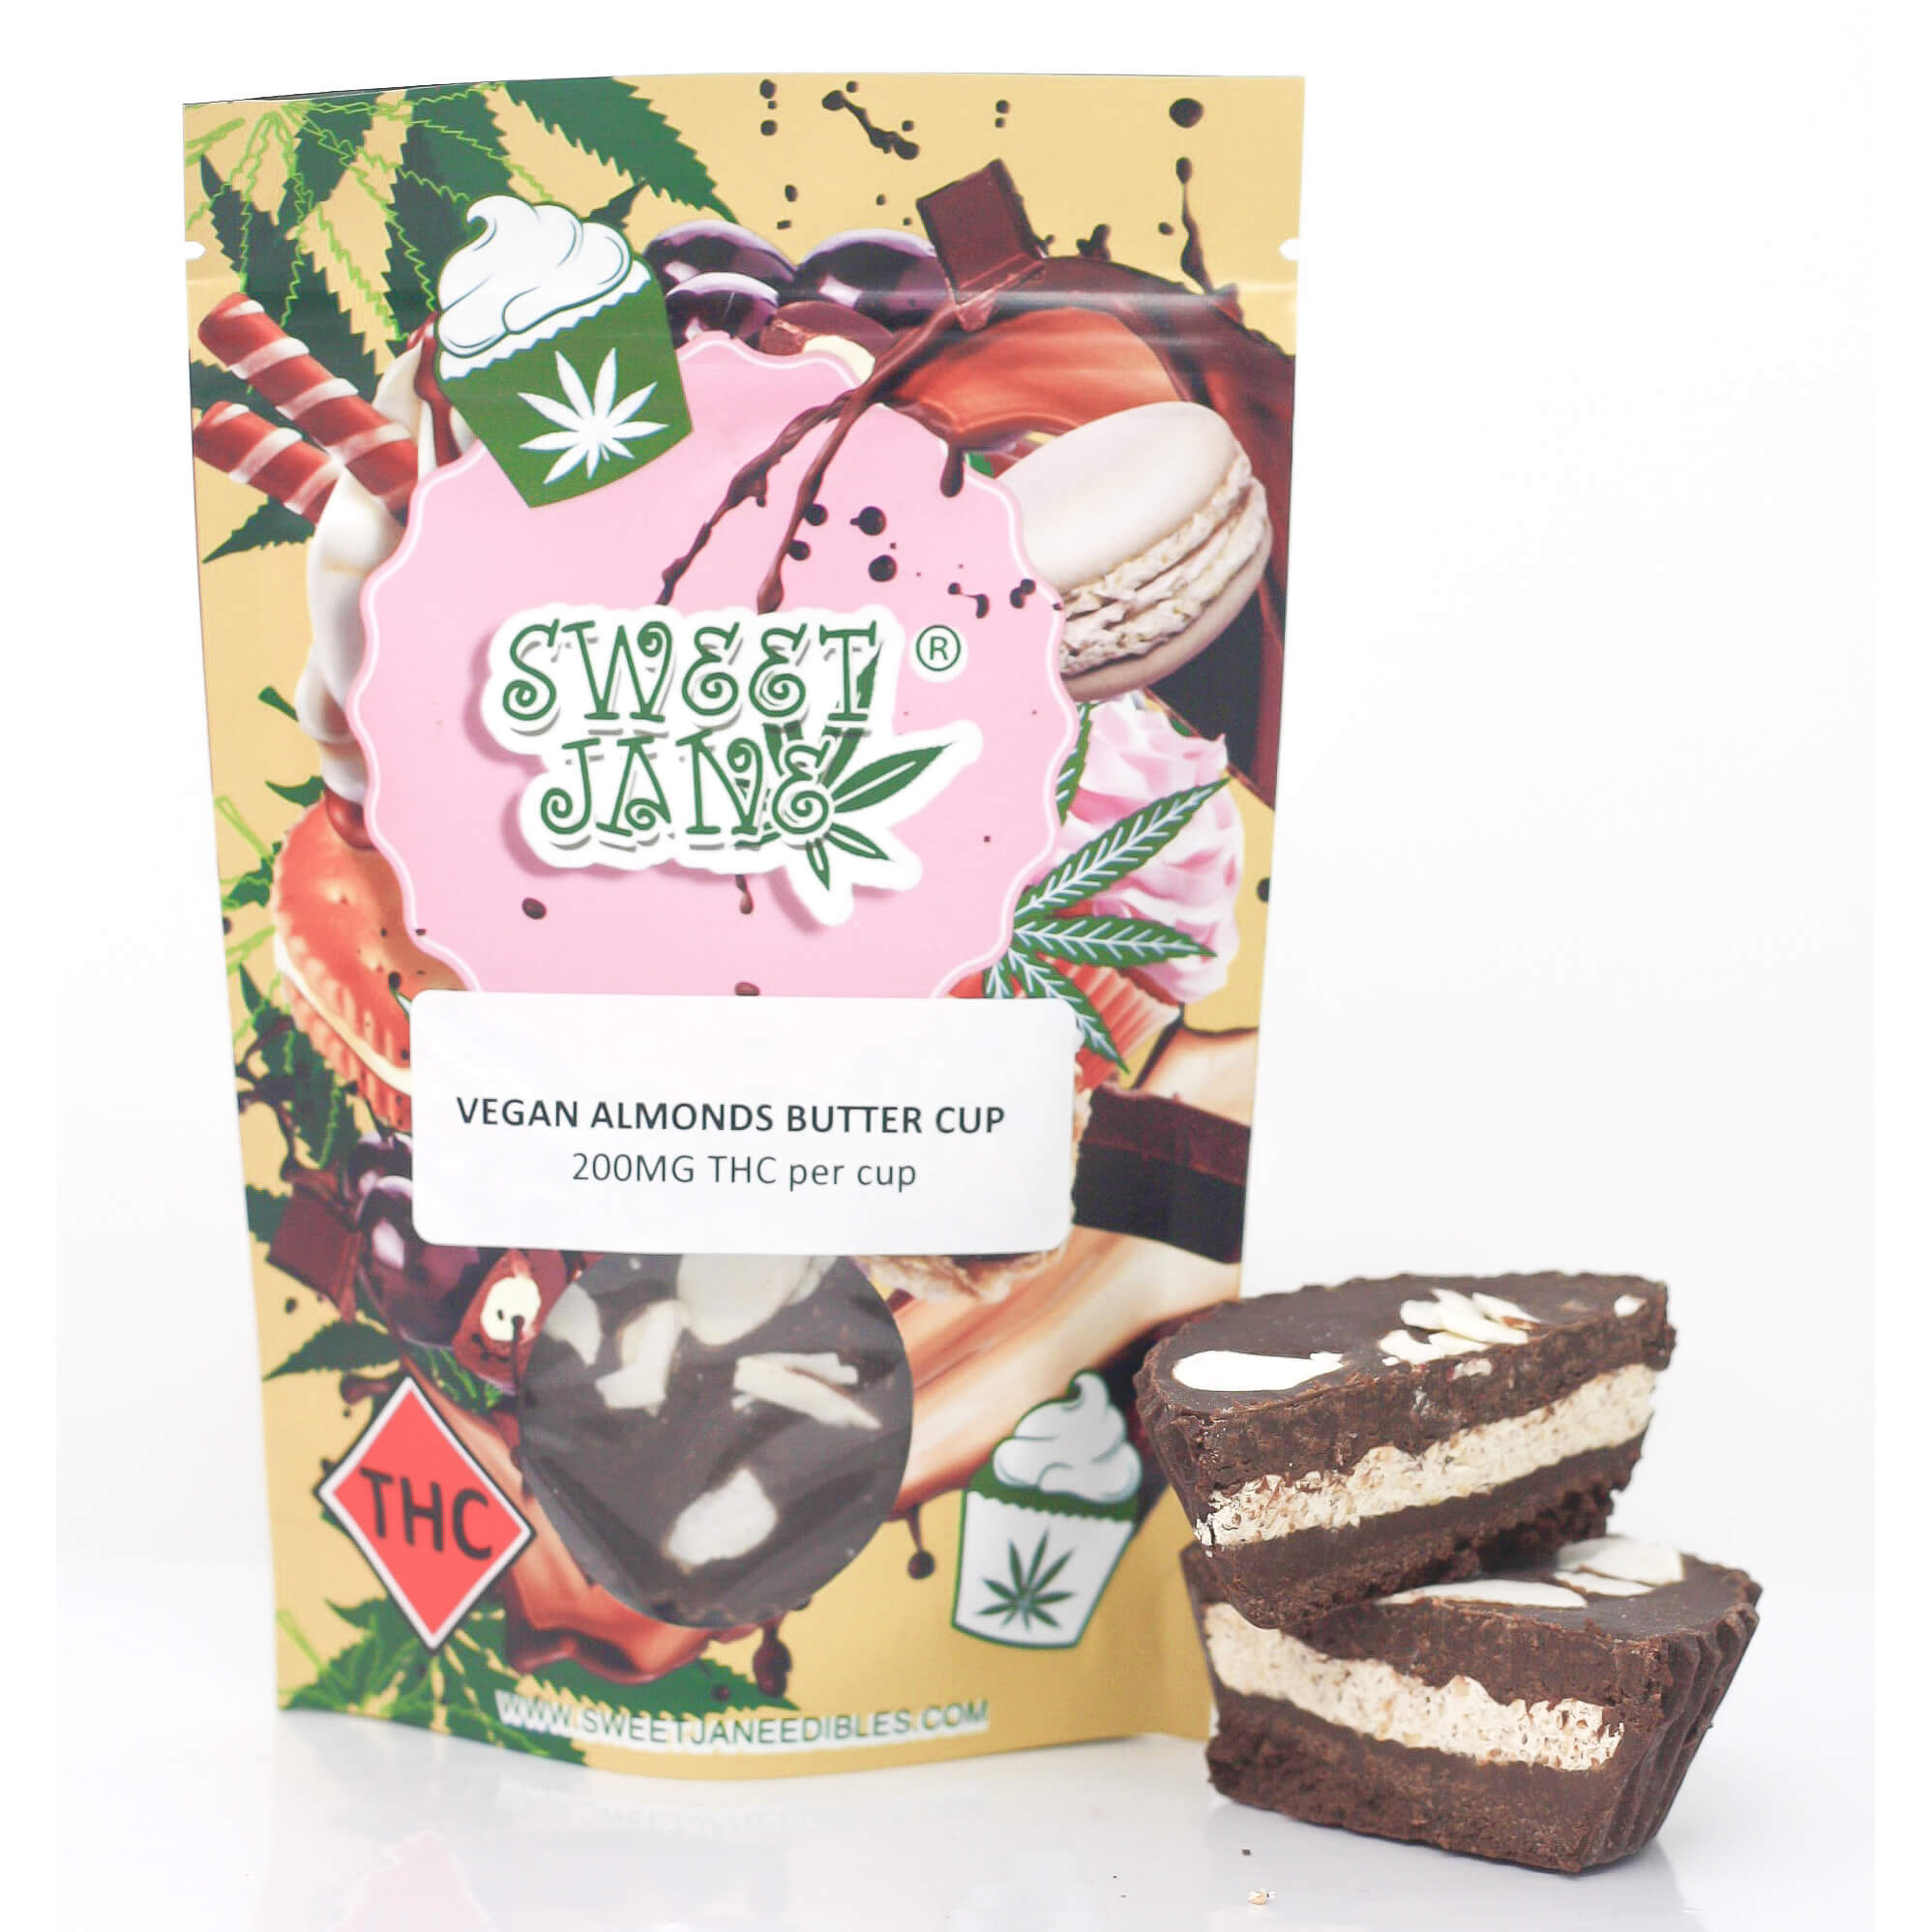 Sweet Janes Vegan Almond Butter THC Cup 200mg by High Grade Aid - Image © 2020 High Grade Aid. All Rights Reserved.